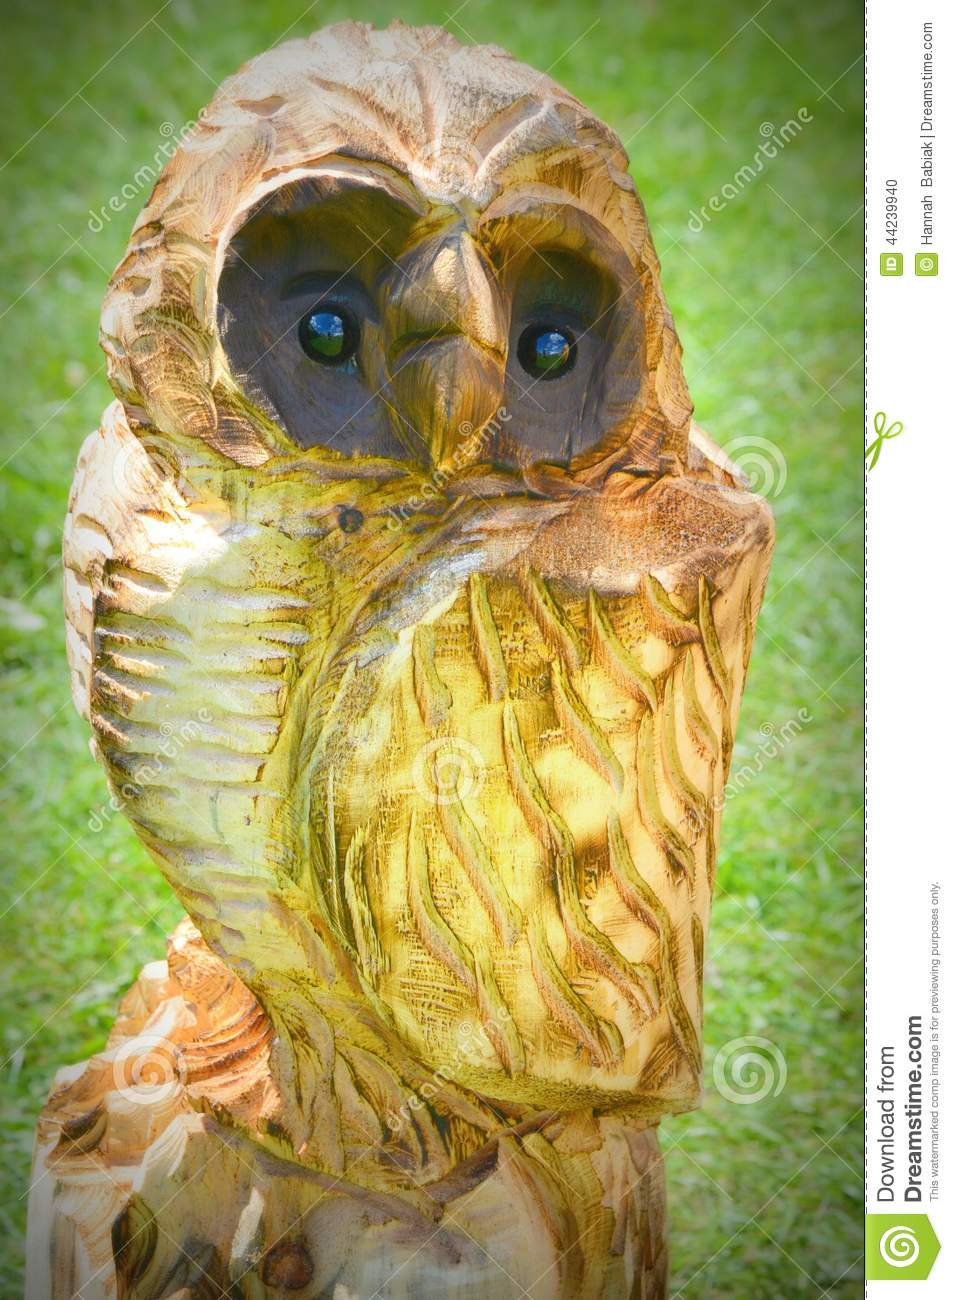 Owl stock photo image of eyes gold artistic claws